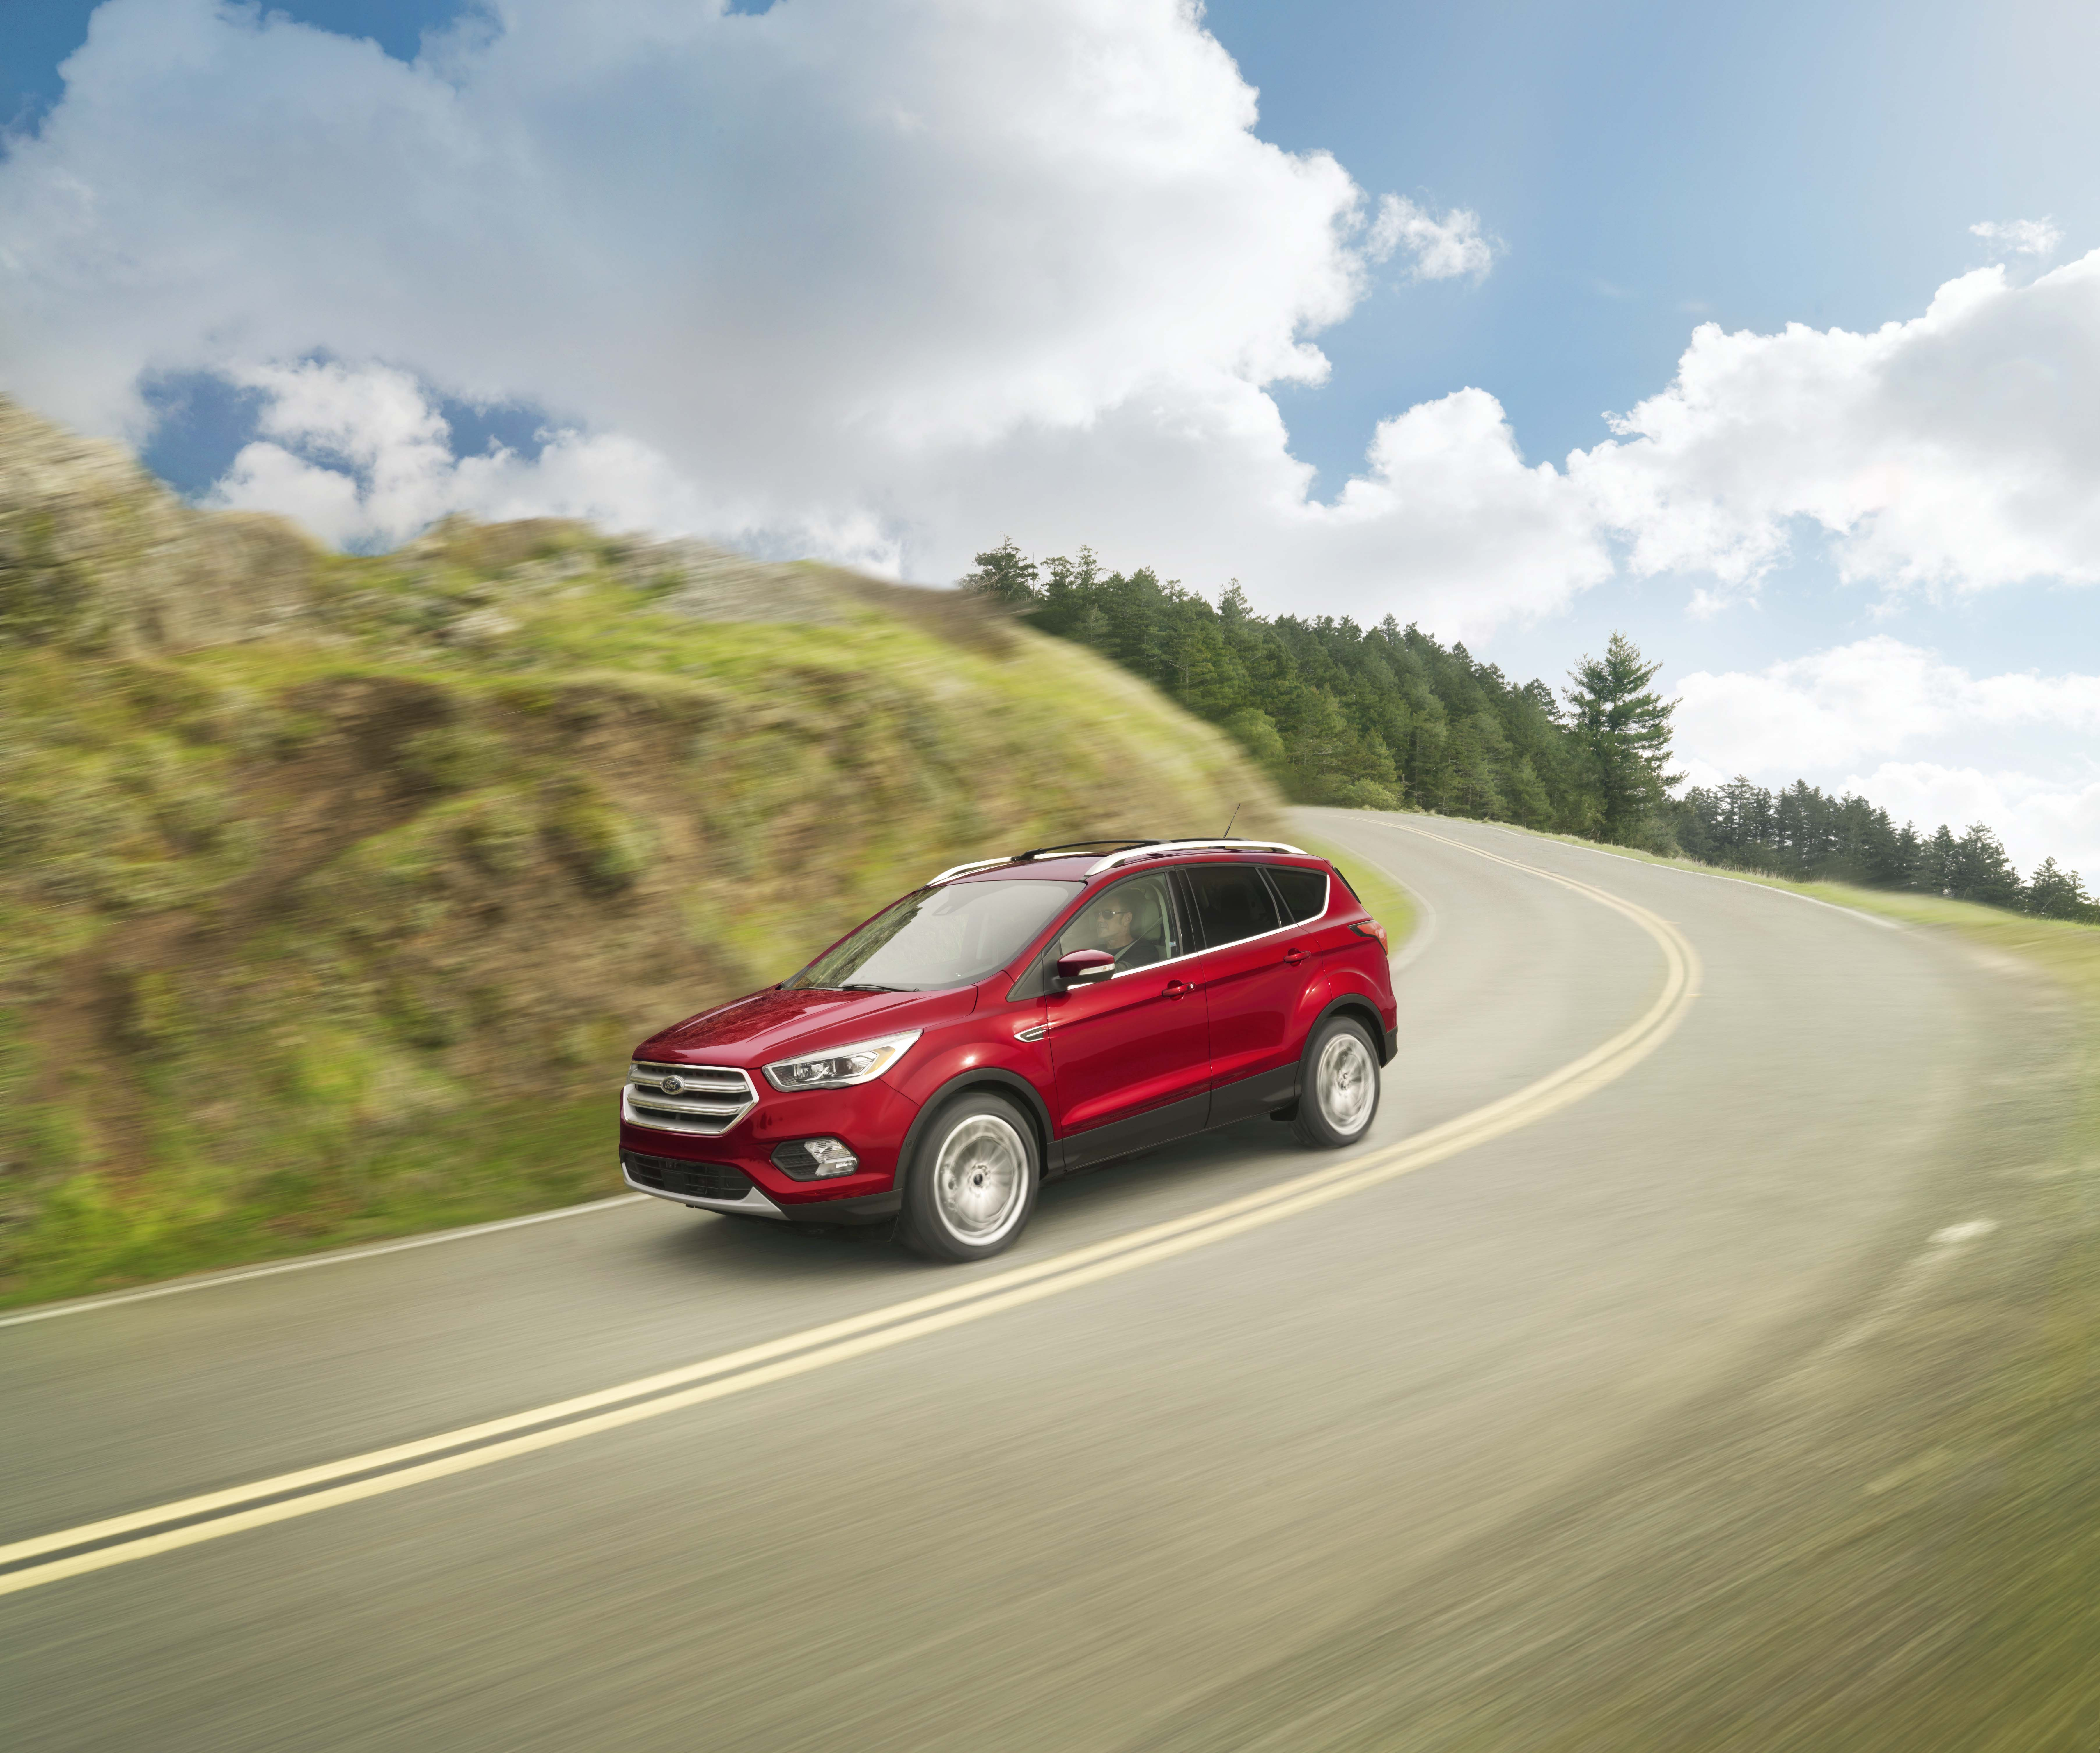 Ford Escapes available in Elizabethtown, KY at Oxmoor Ford Lincoln